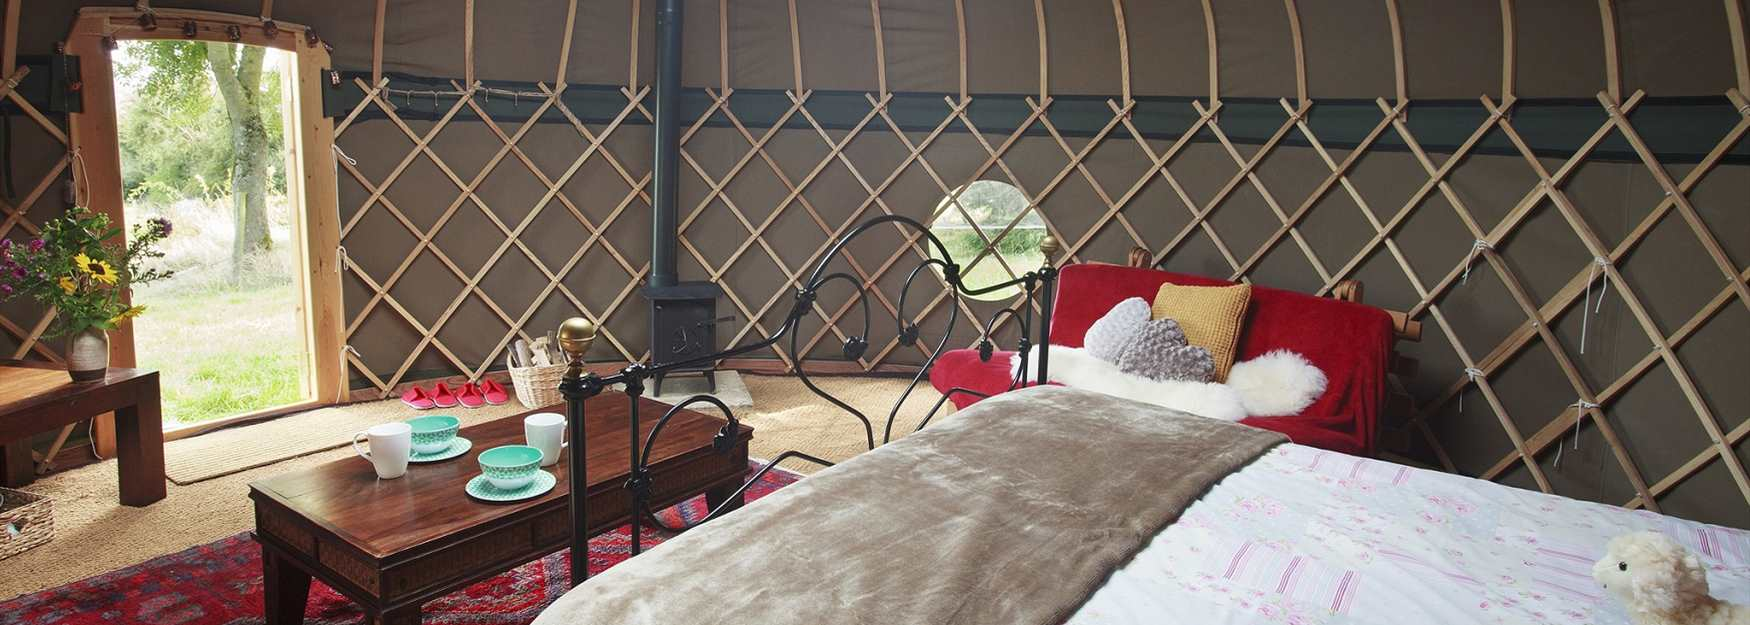 Inside one of the Campden Yurts